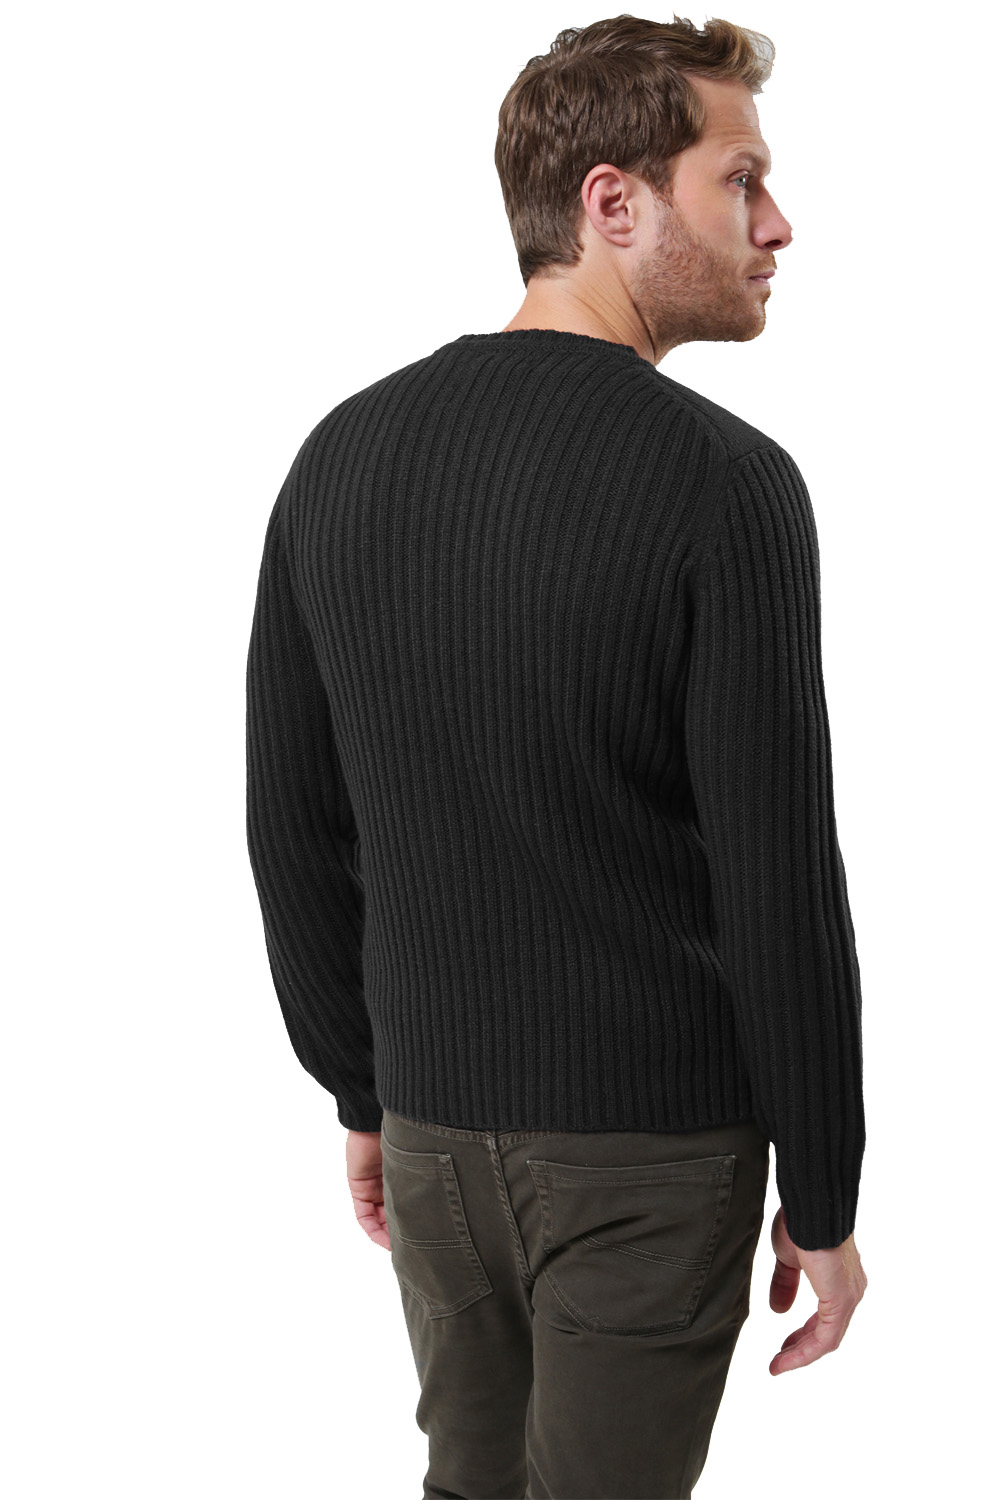 Threadbare-Mens-Saltbush-Jumper-Crew-Neck-Chunky-Cable-Knit-Wool-Blend-Sweater thumbnail 3